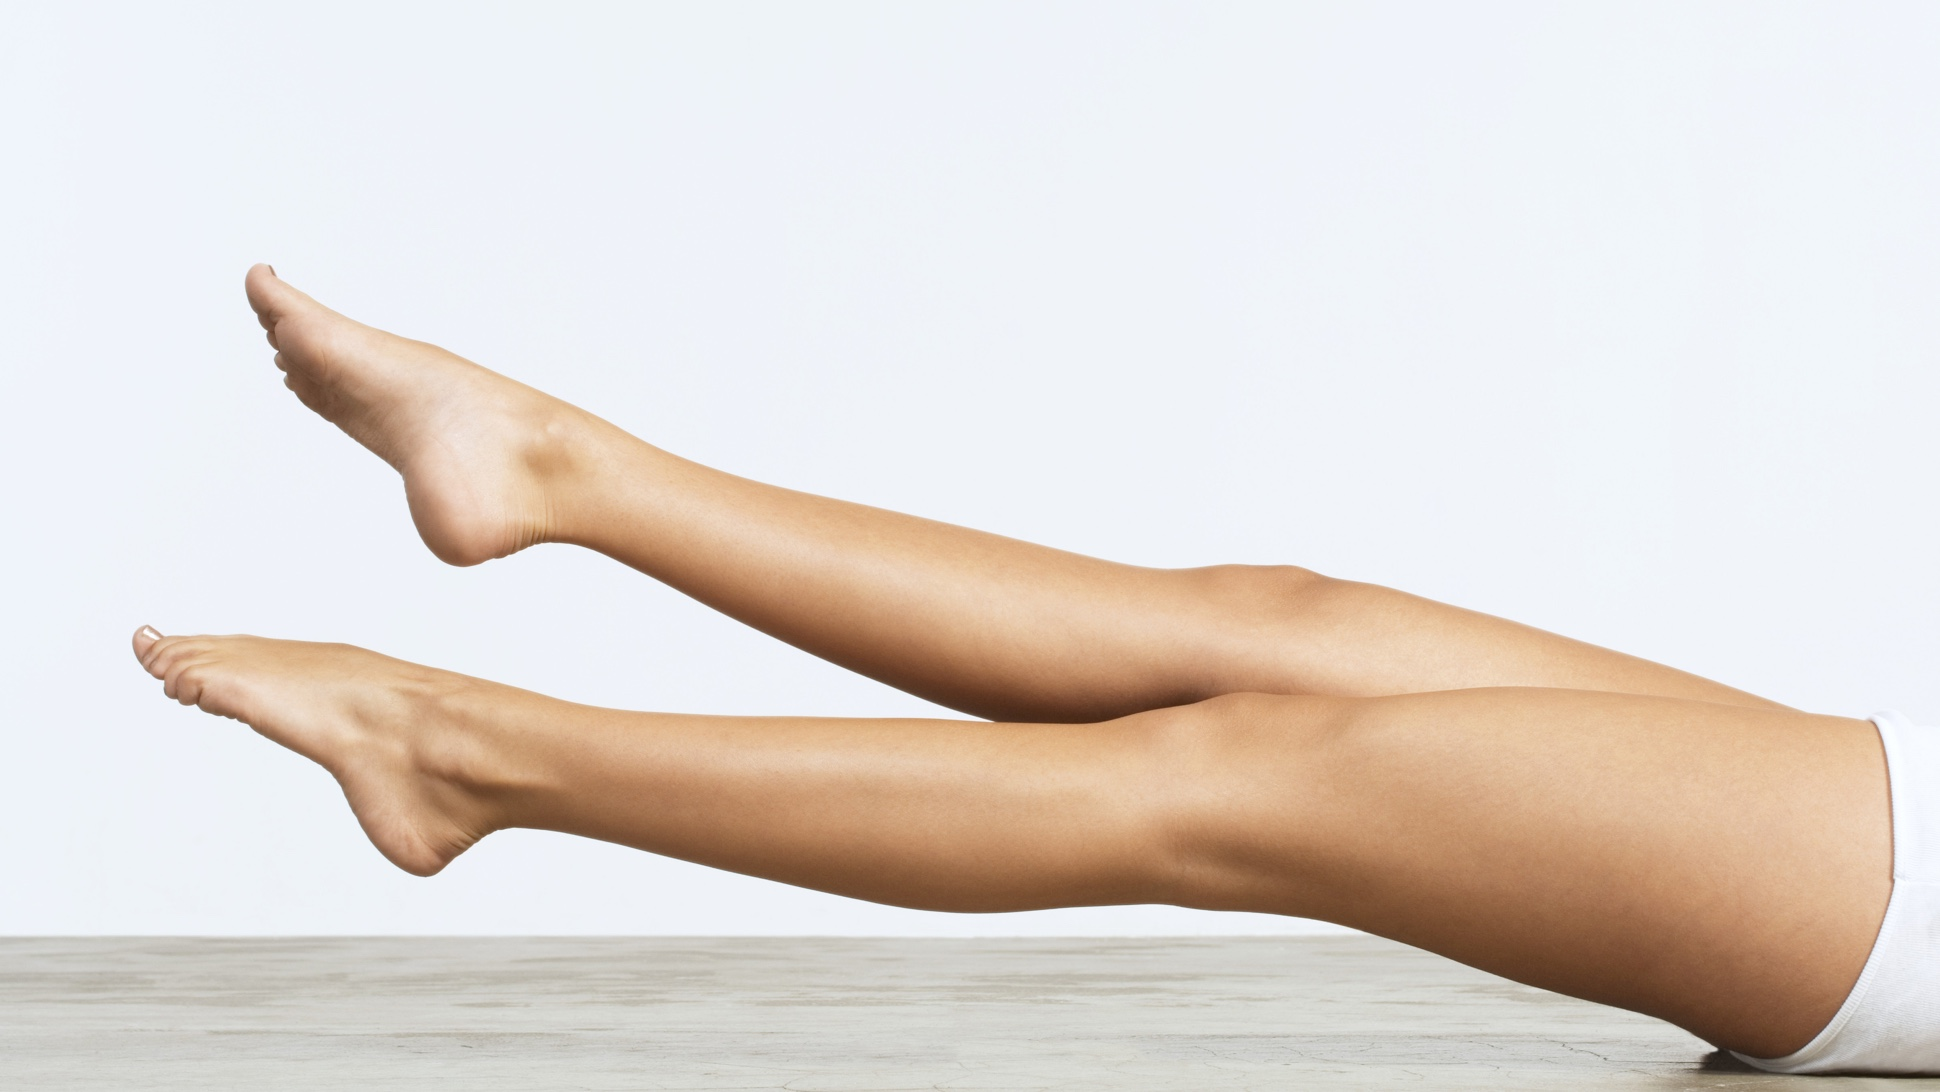 Image of woman's legs after laser treatment